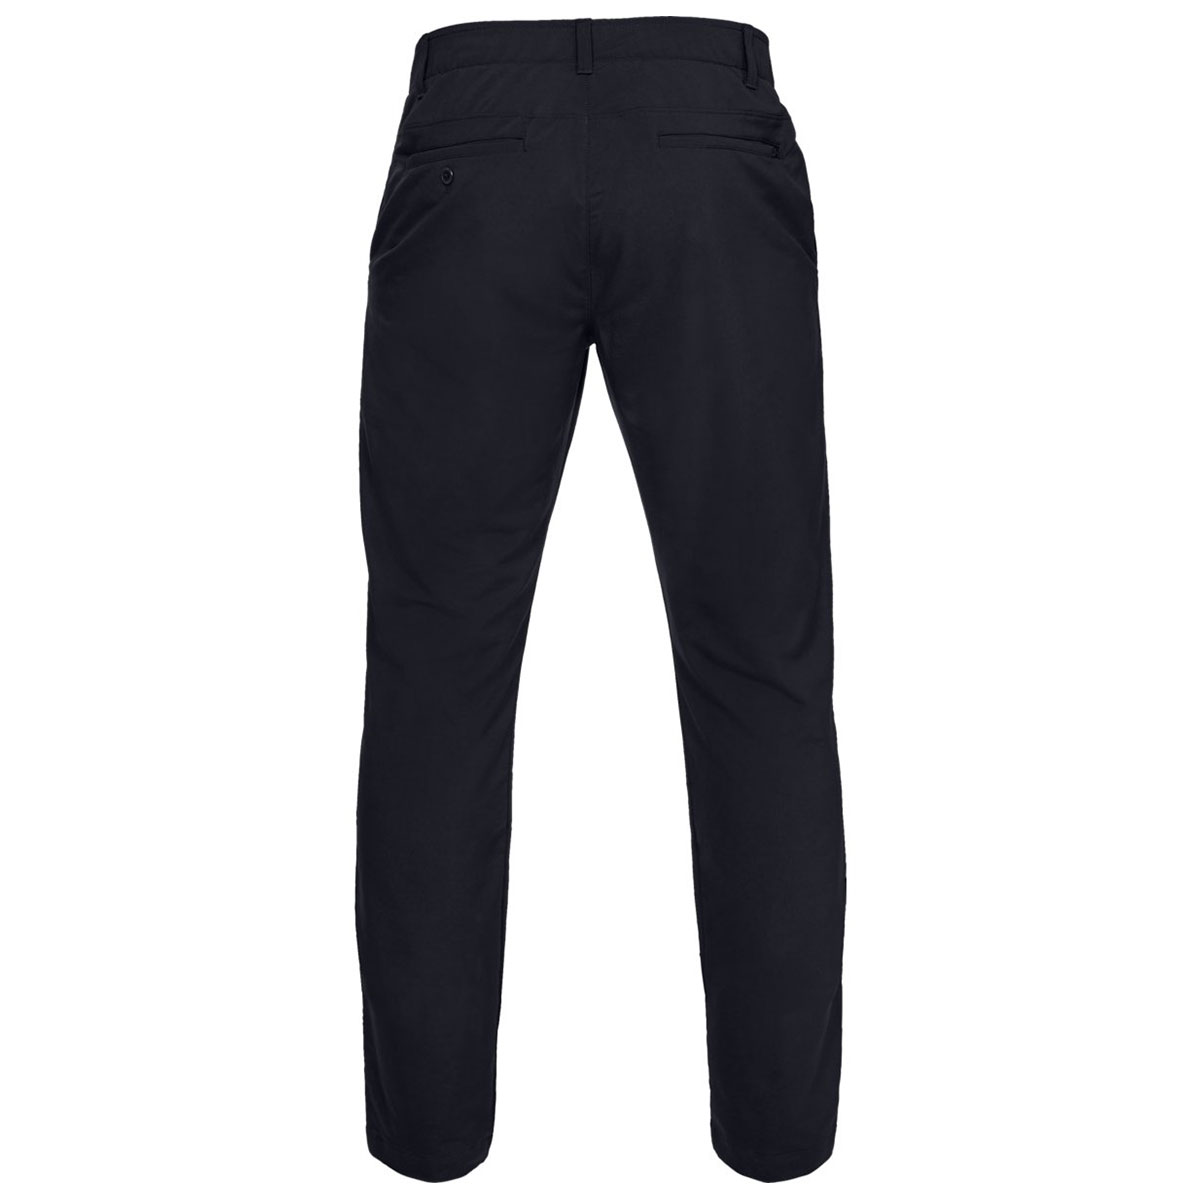 Under-Armour-Mens-2019-EU-Performance-Taper-Soft-Stretch-Golf-Trousers thumbnail 5